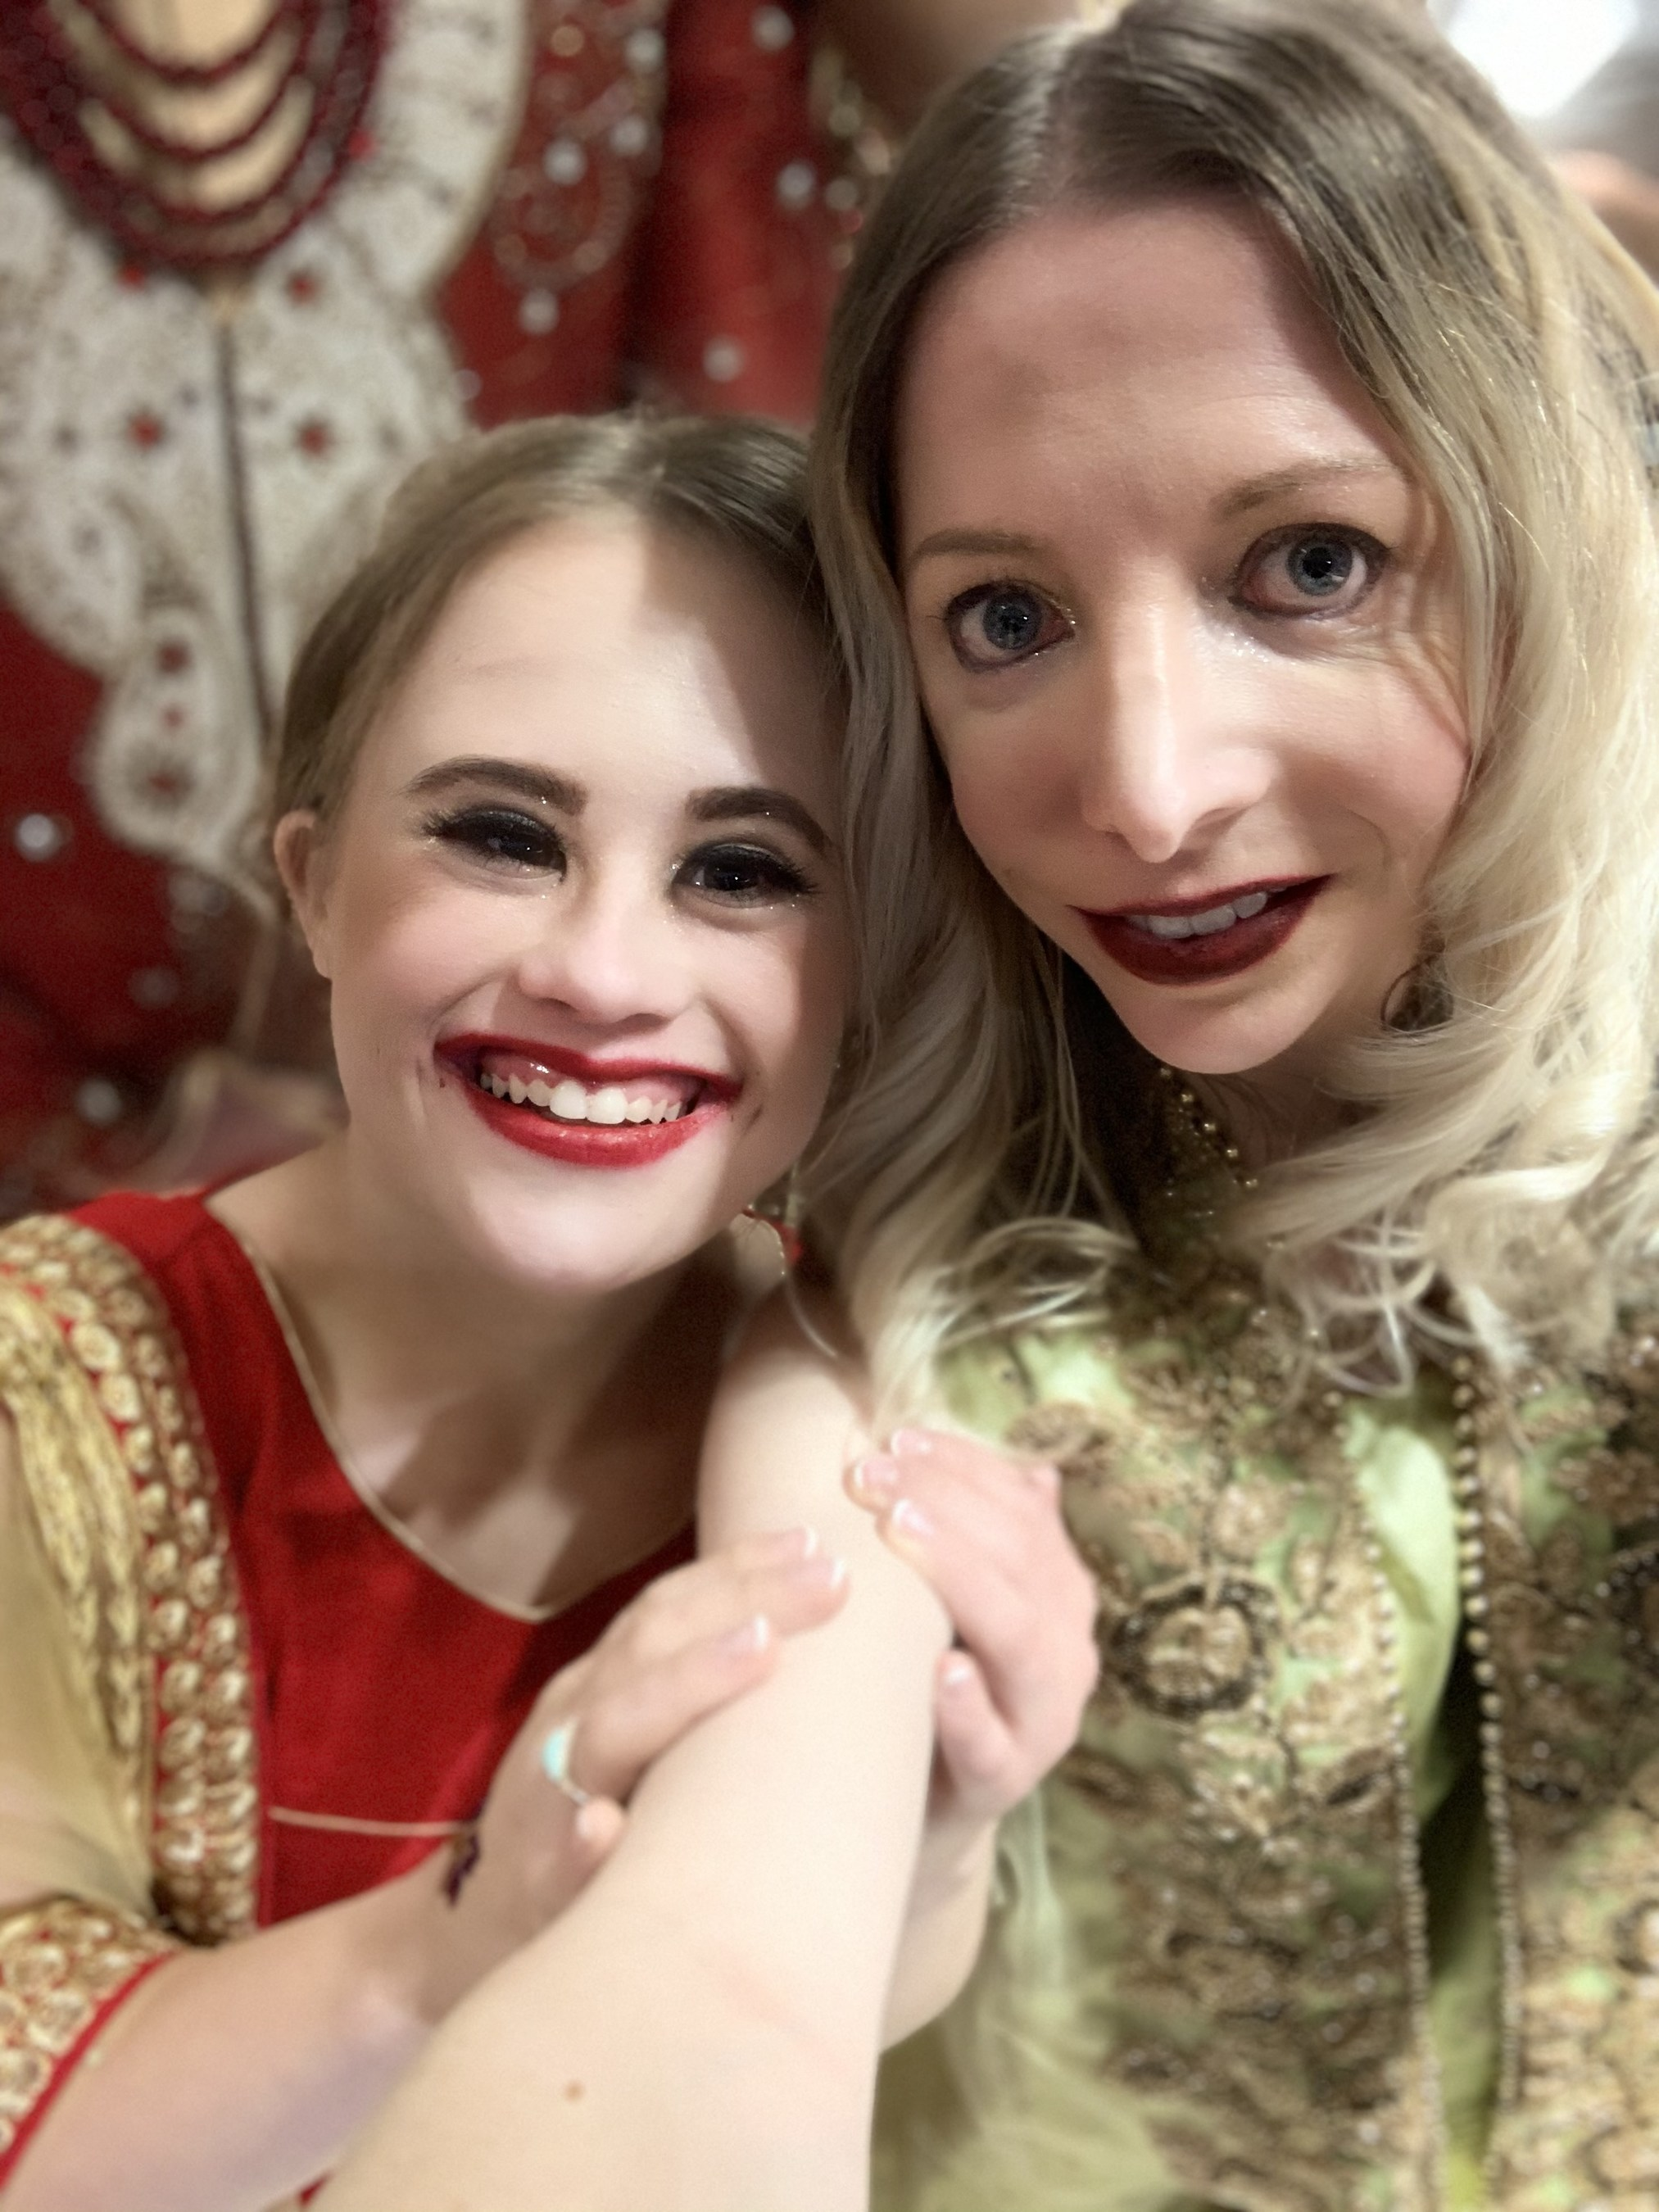 Cynthia Murphy, Treacher Collins Syndrome and Abigail Adams the Advocate with Down syndrome walking the runway together